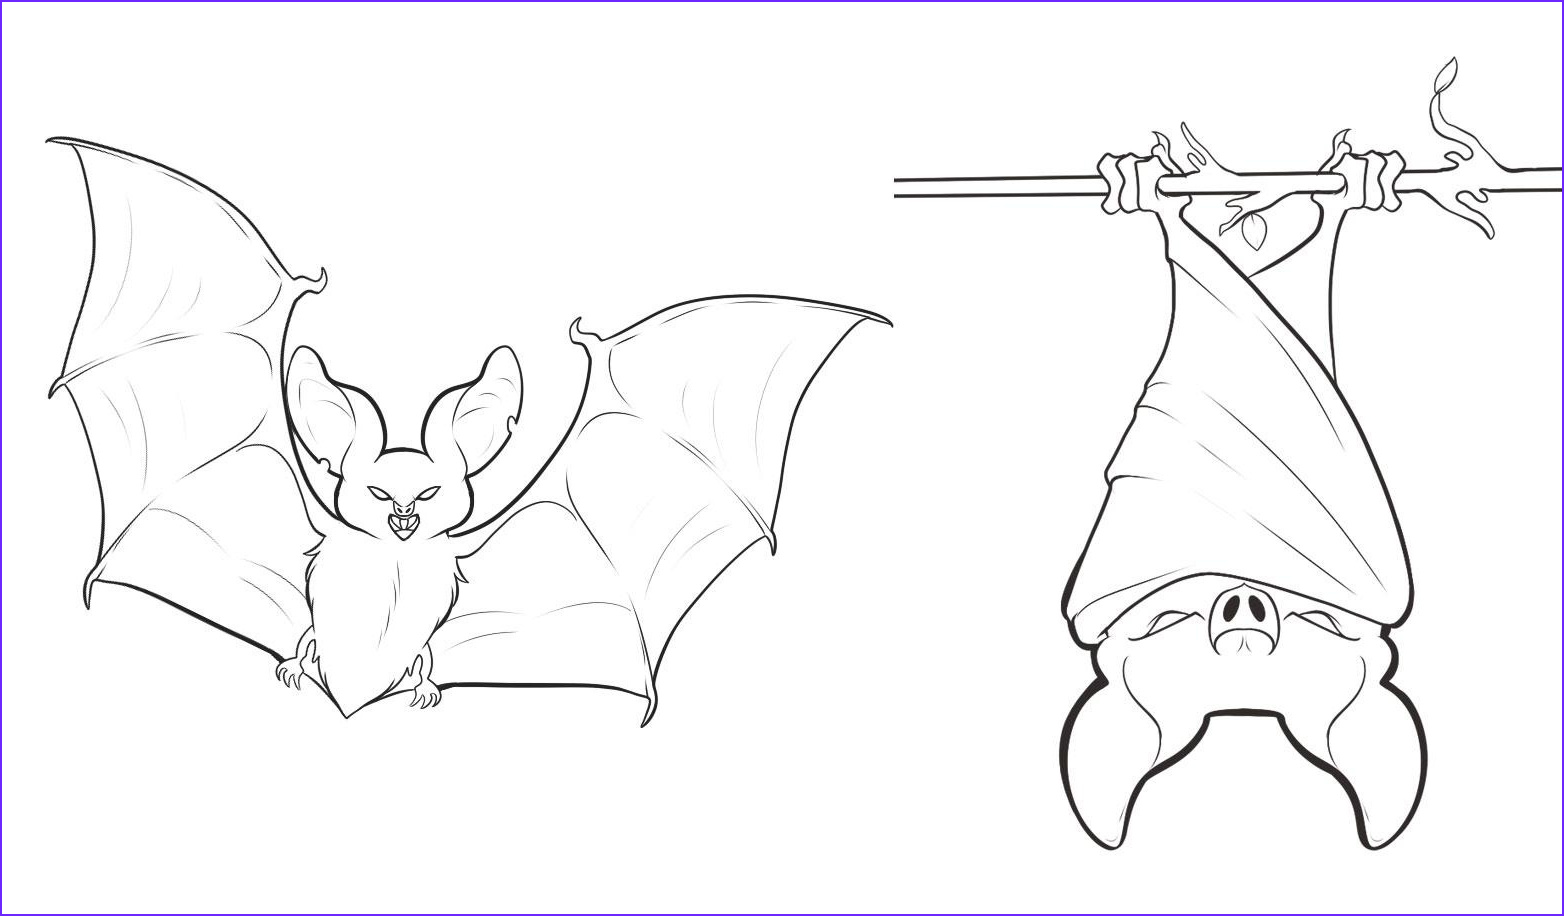 Bat Coloring Pages Best Of Stock Free Printable Bat Coloring Pages for Kids